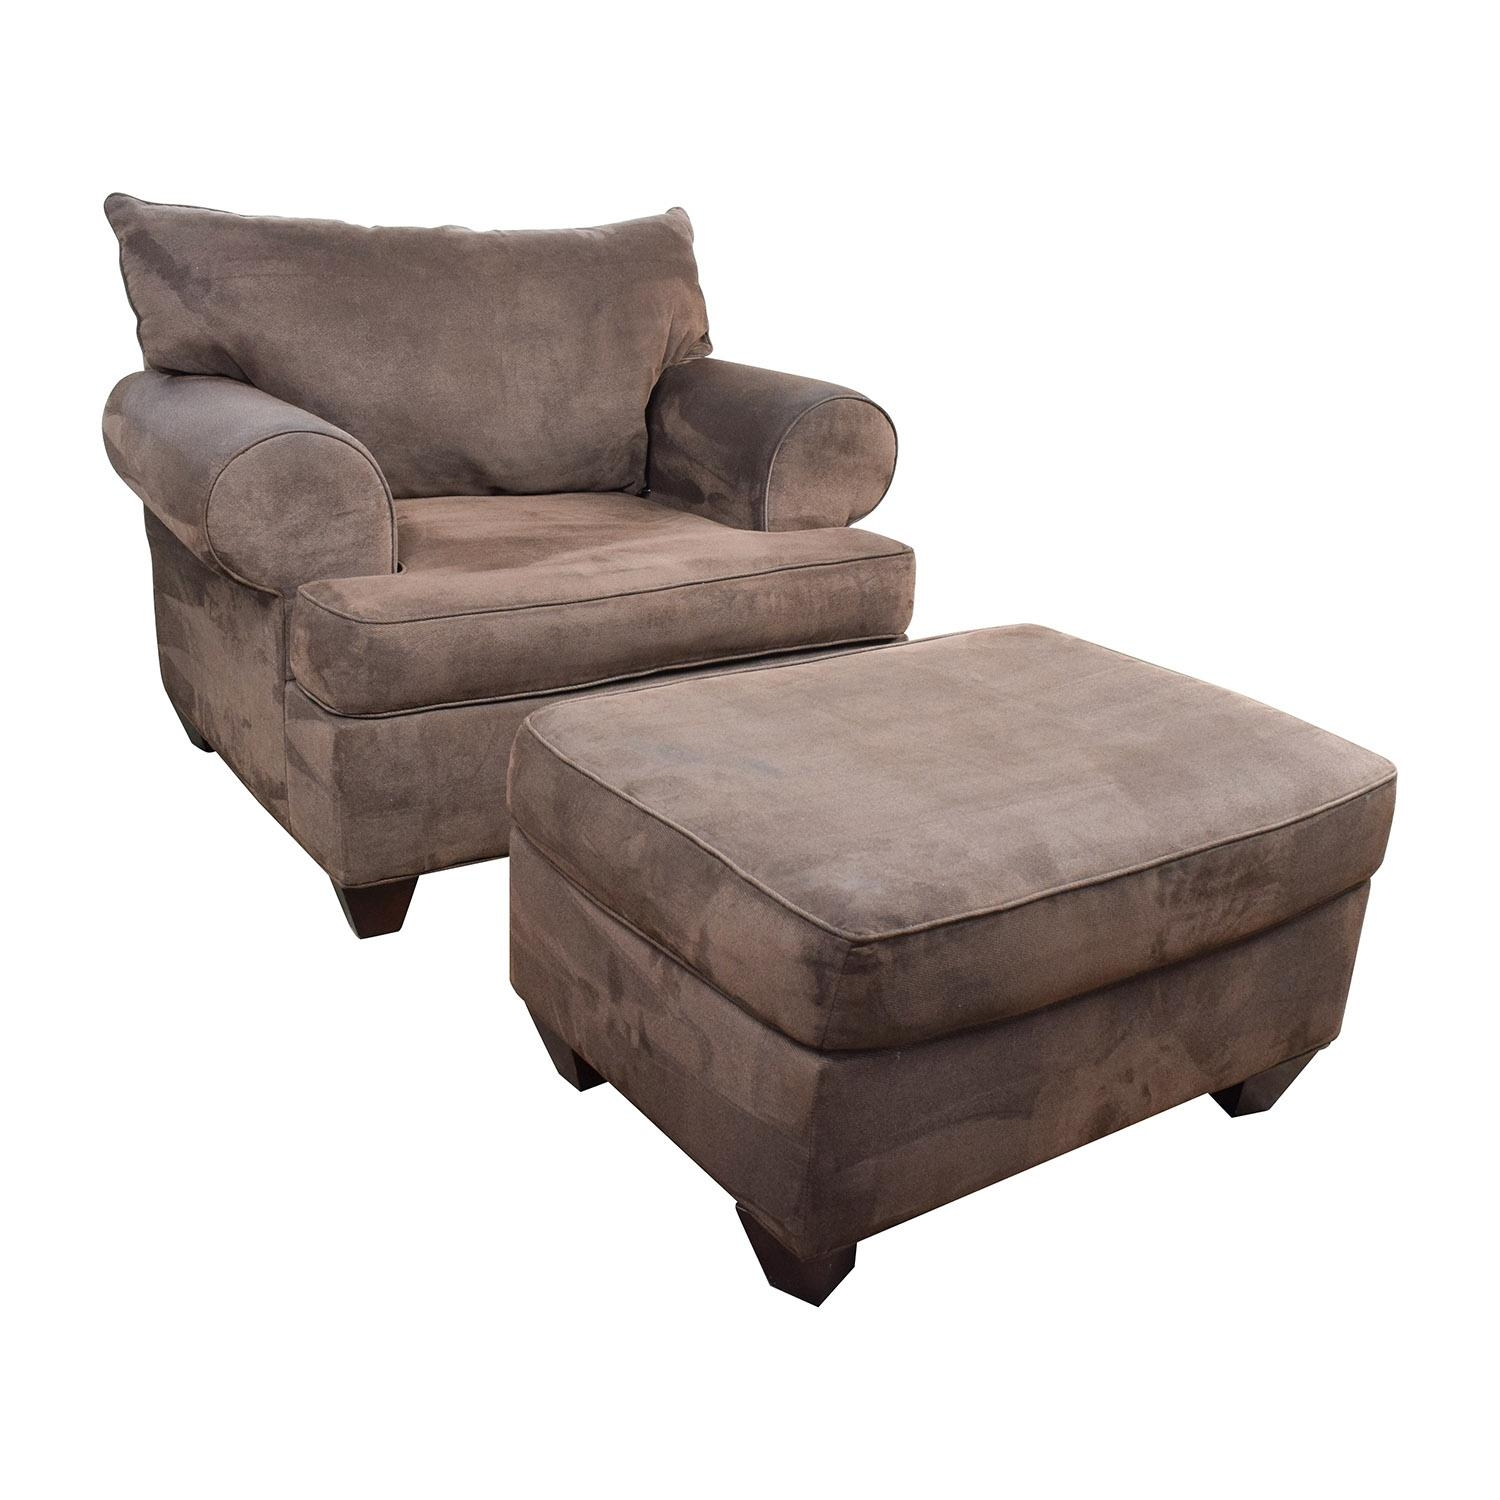 67% Off - Dark Brown Sofa Chair With Ottoman / Chairs inside Sofa Chair With Ottoman